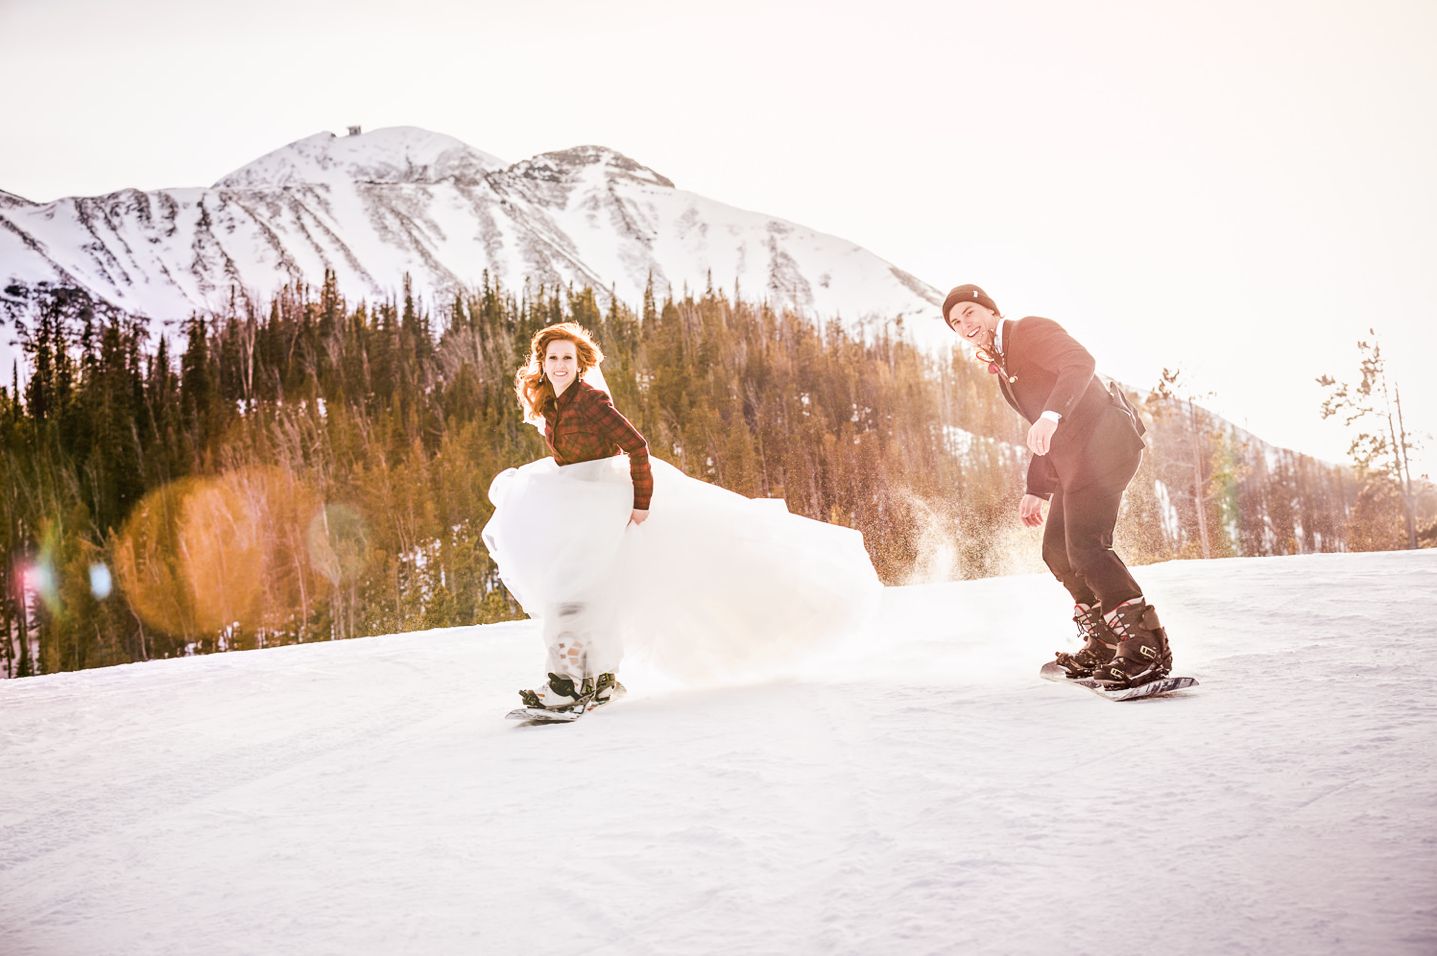 A wedding couple is snowboarding at the Big Sky Resort in Montana.